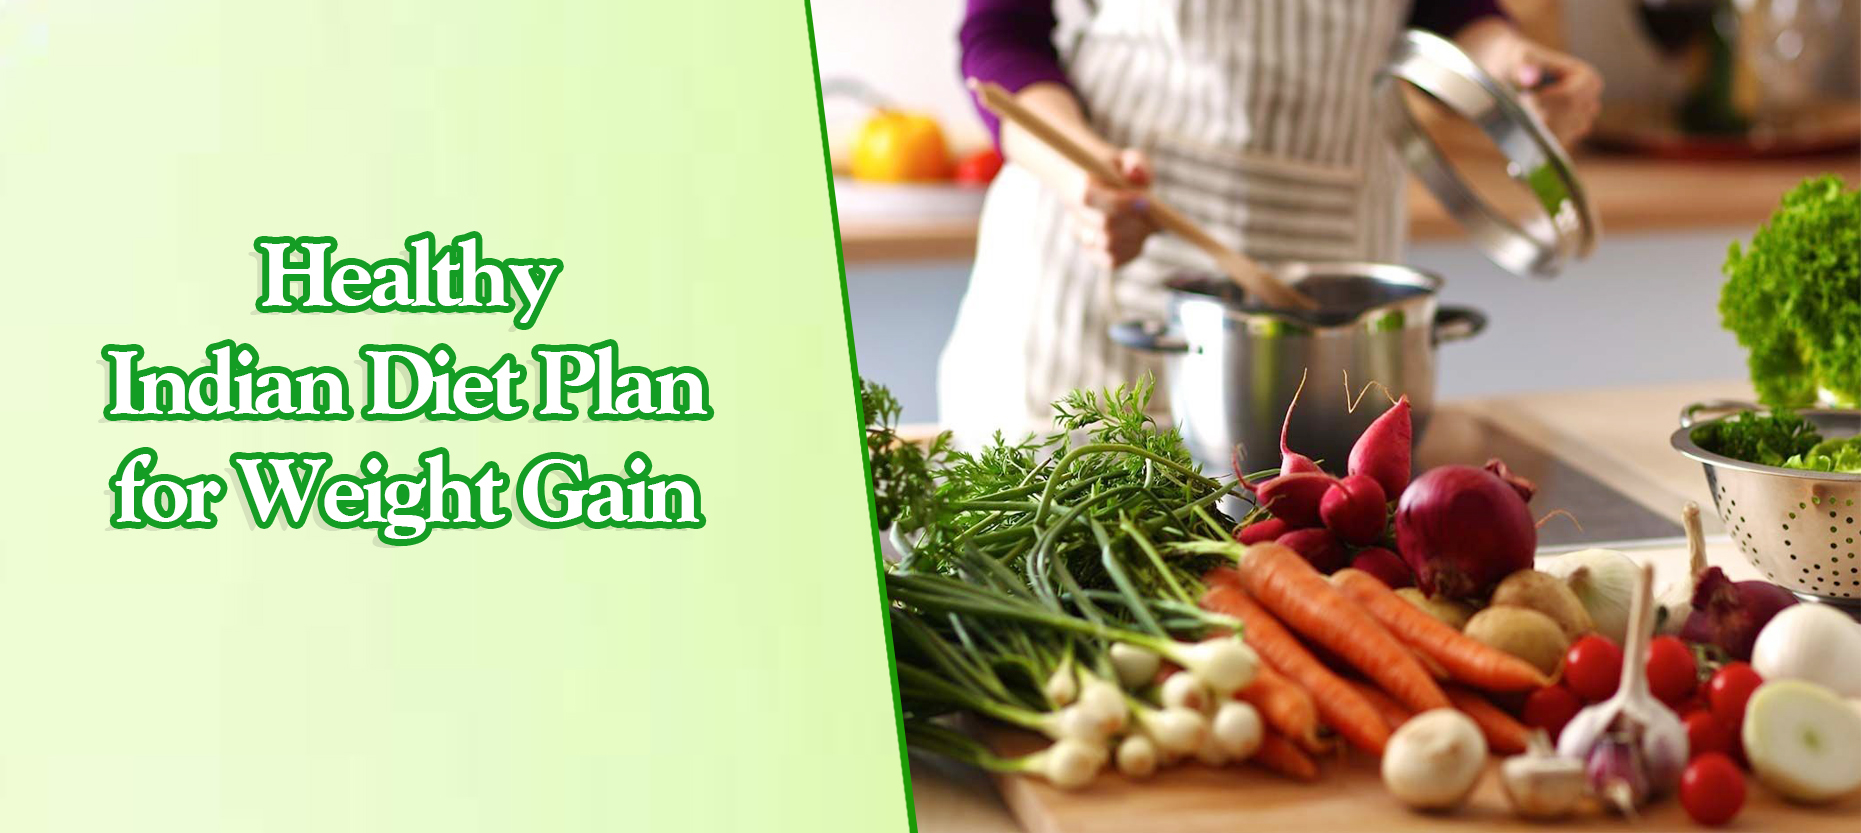 Healthy Indian Diet Plan for Weight Gain